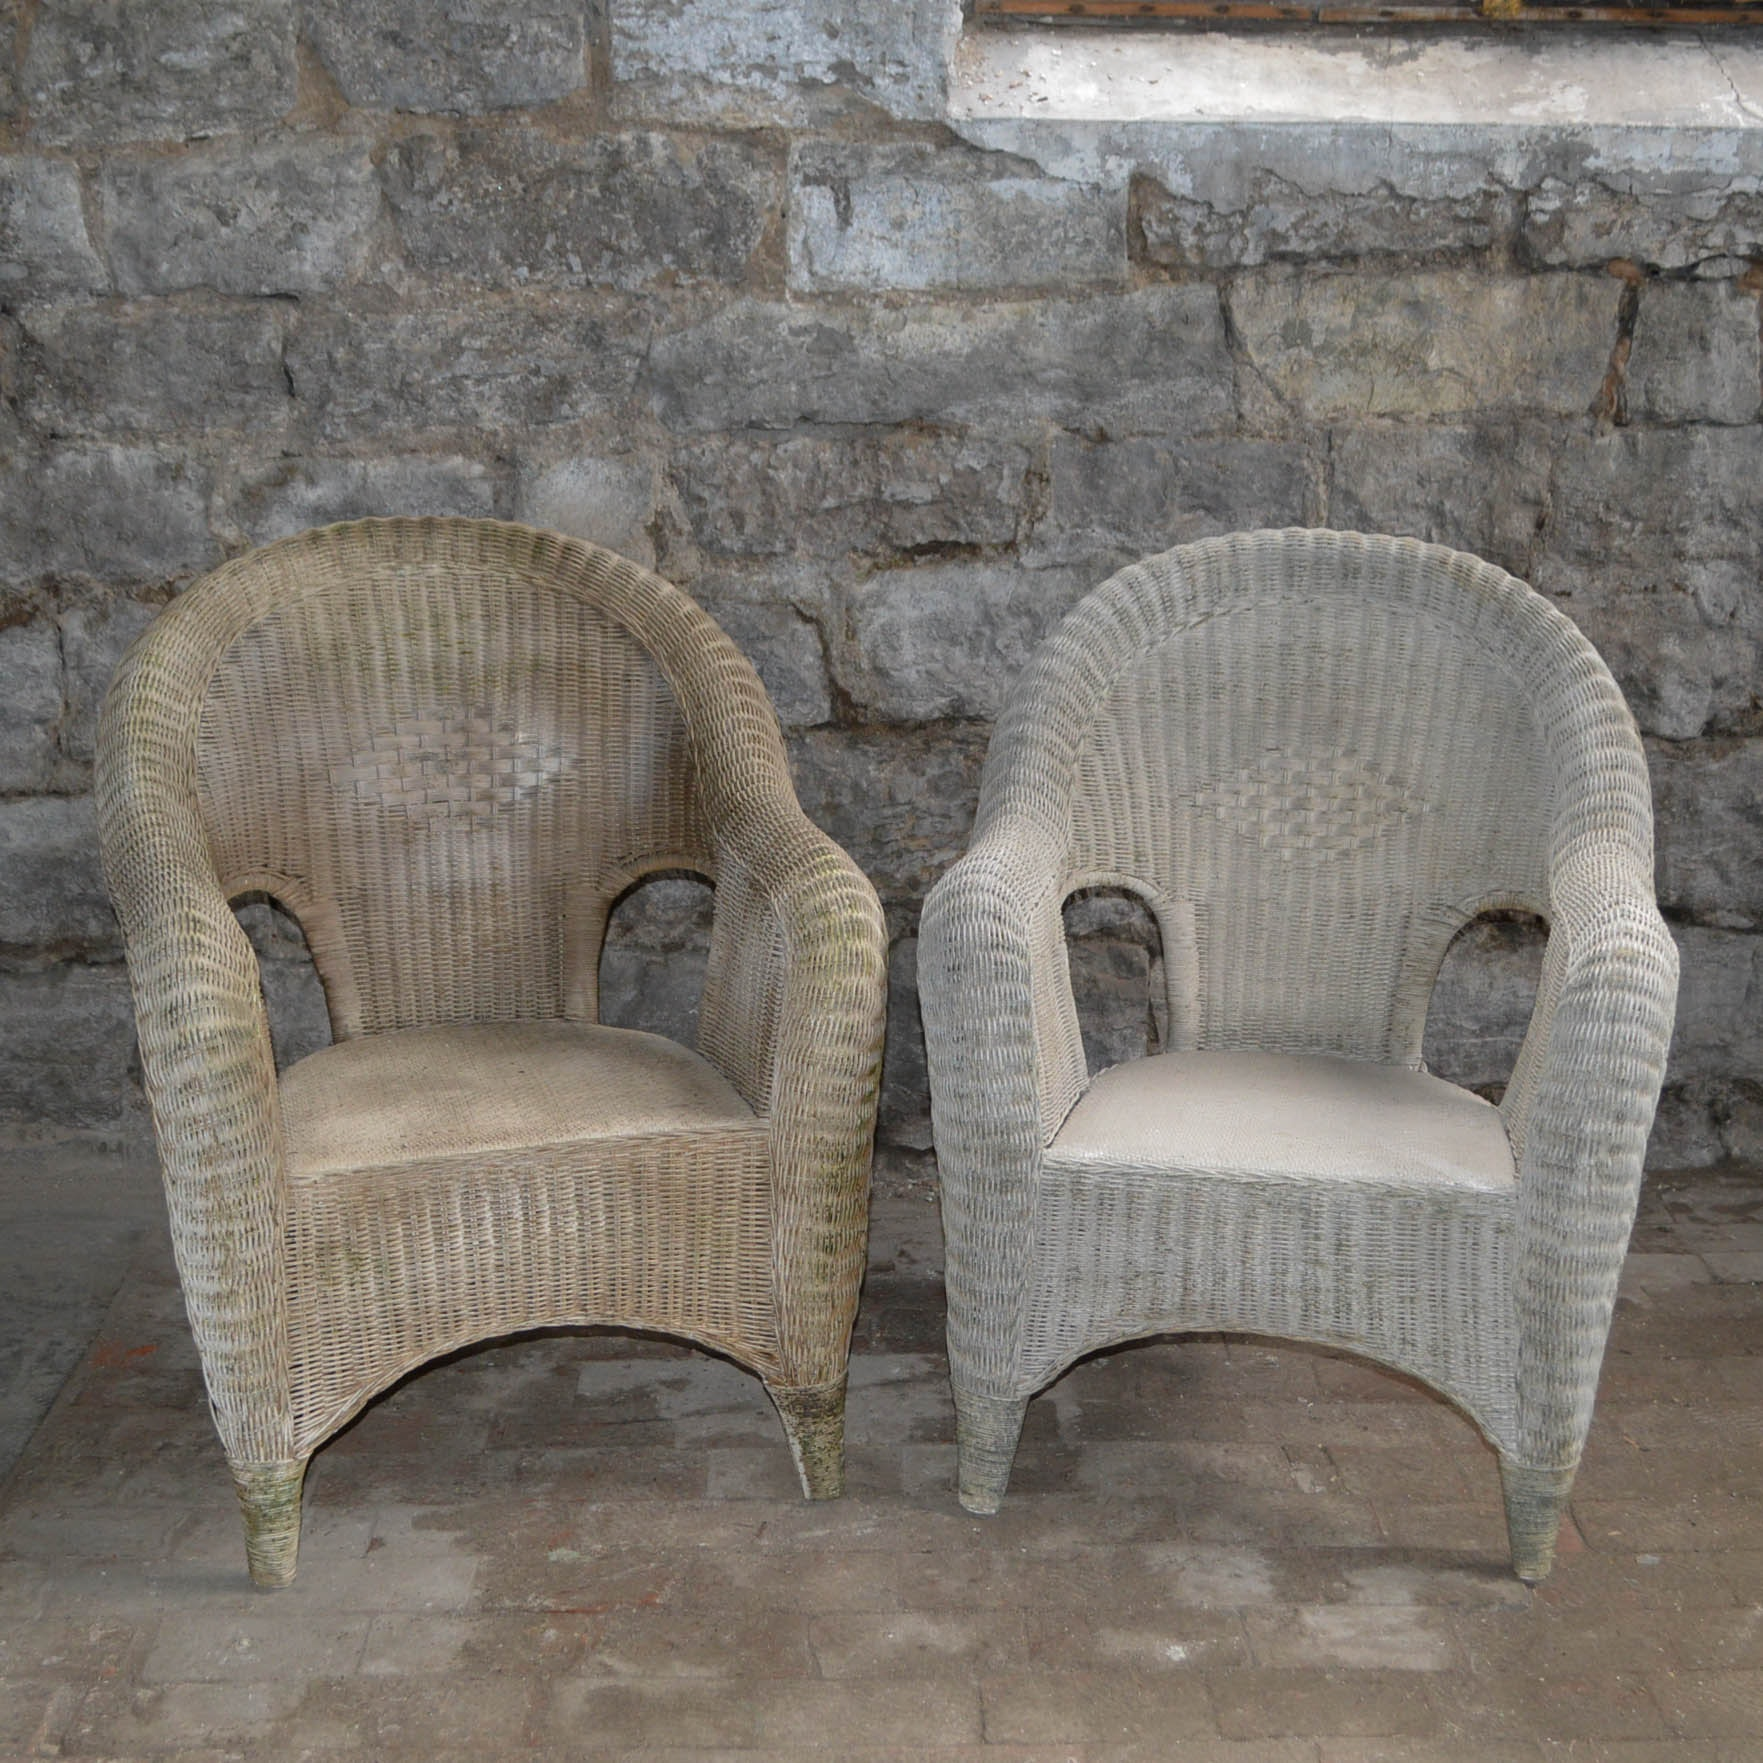 Vintage Wicker Chairs ...